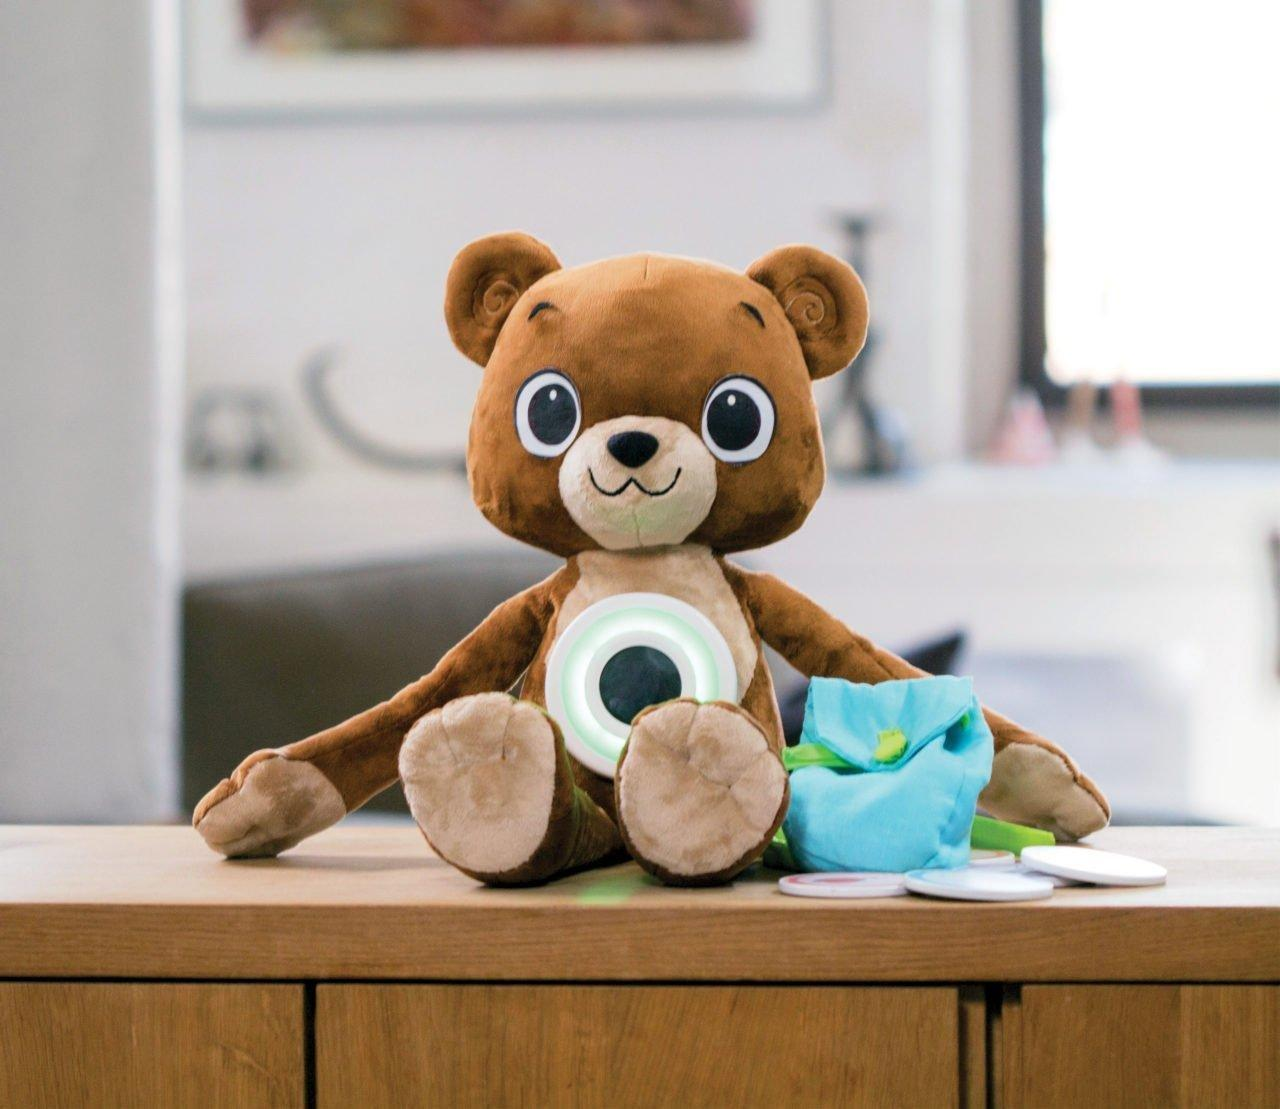 Care For The Bear: A Novel Approach To Diabetes Education